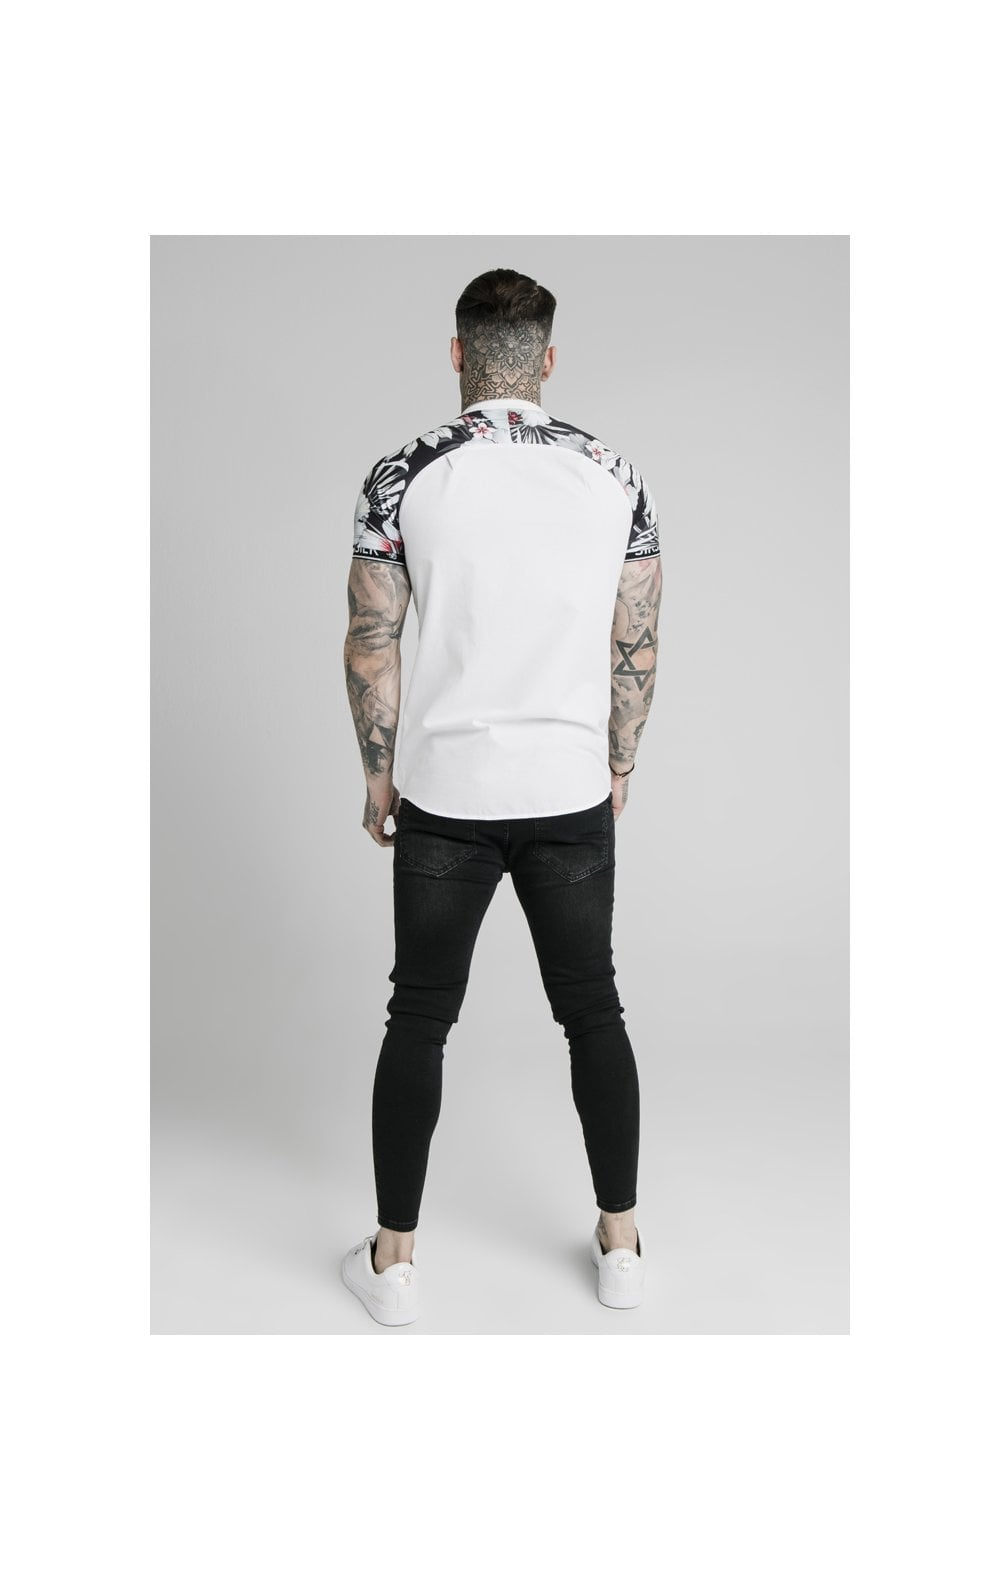 Load image into Gallery viewer, SikSilk S/S Floral Raglan Tech Shirt - White & Floral (3)